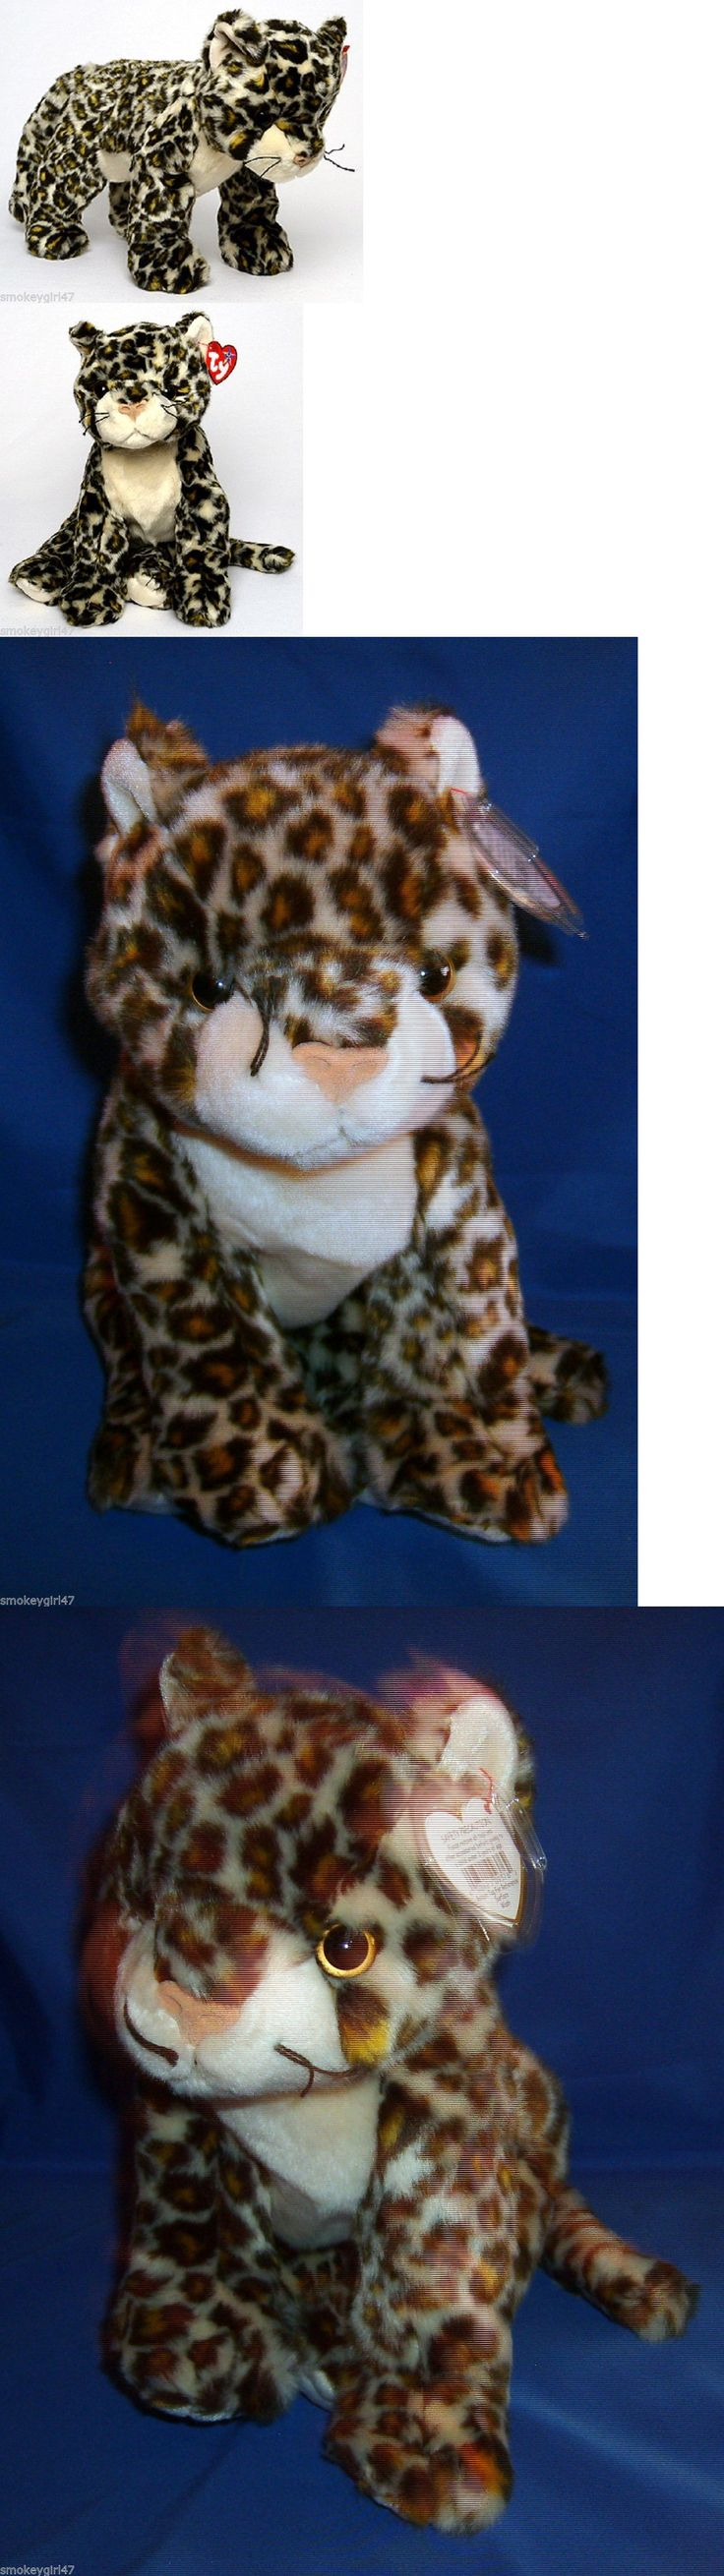 Retired 19207: Ty Sneaky The Leopard Beanie Buddy 2000 - 10.5 Inches, Nwmt -> BUY IT NOW ONLY: $38 on eBay!